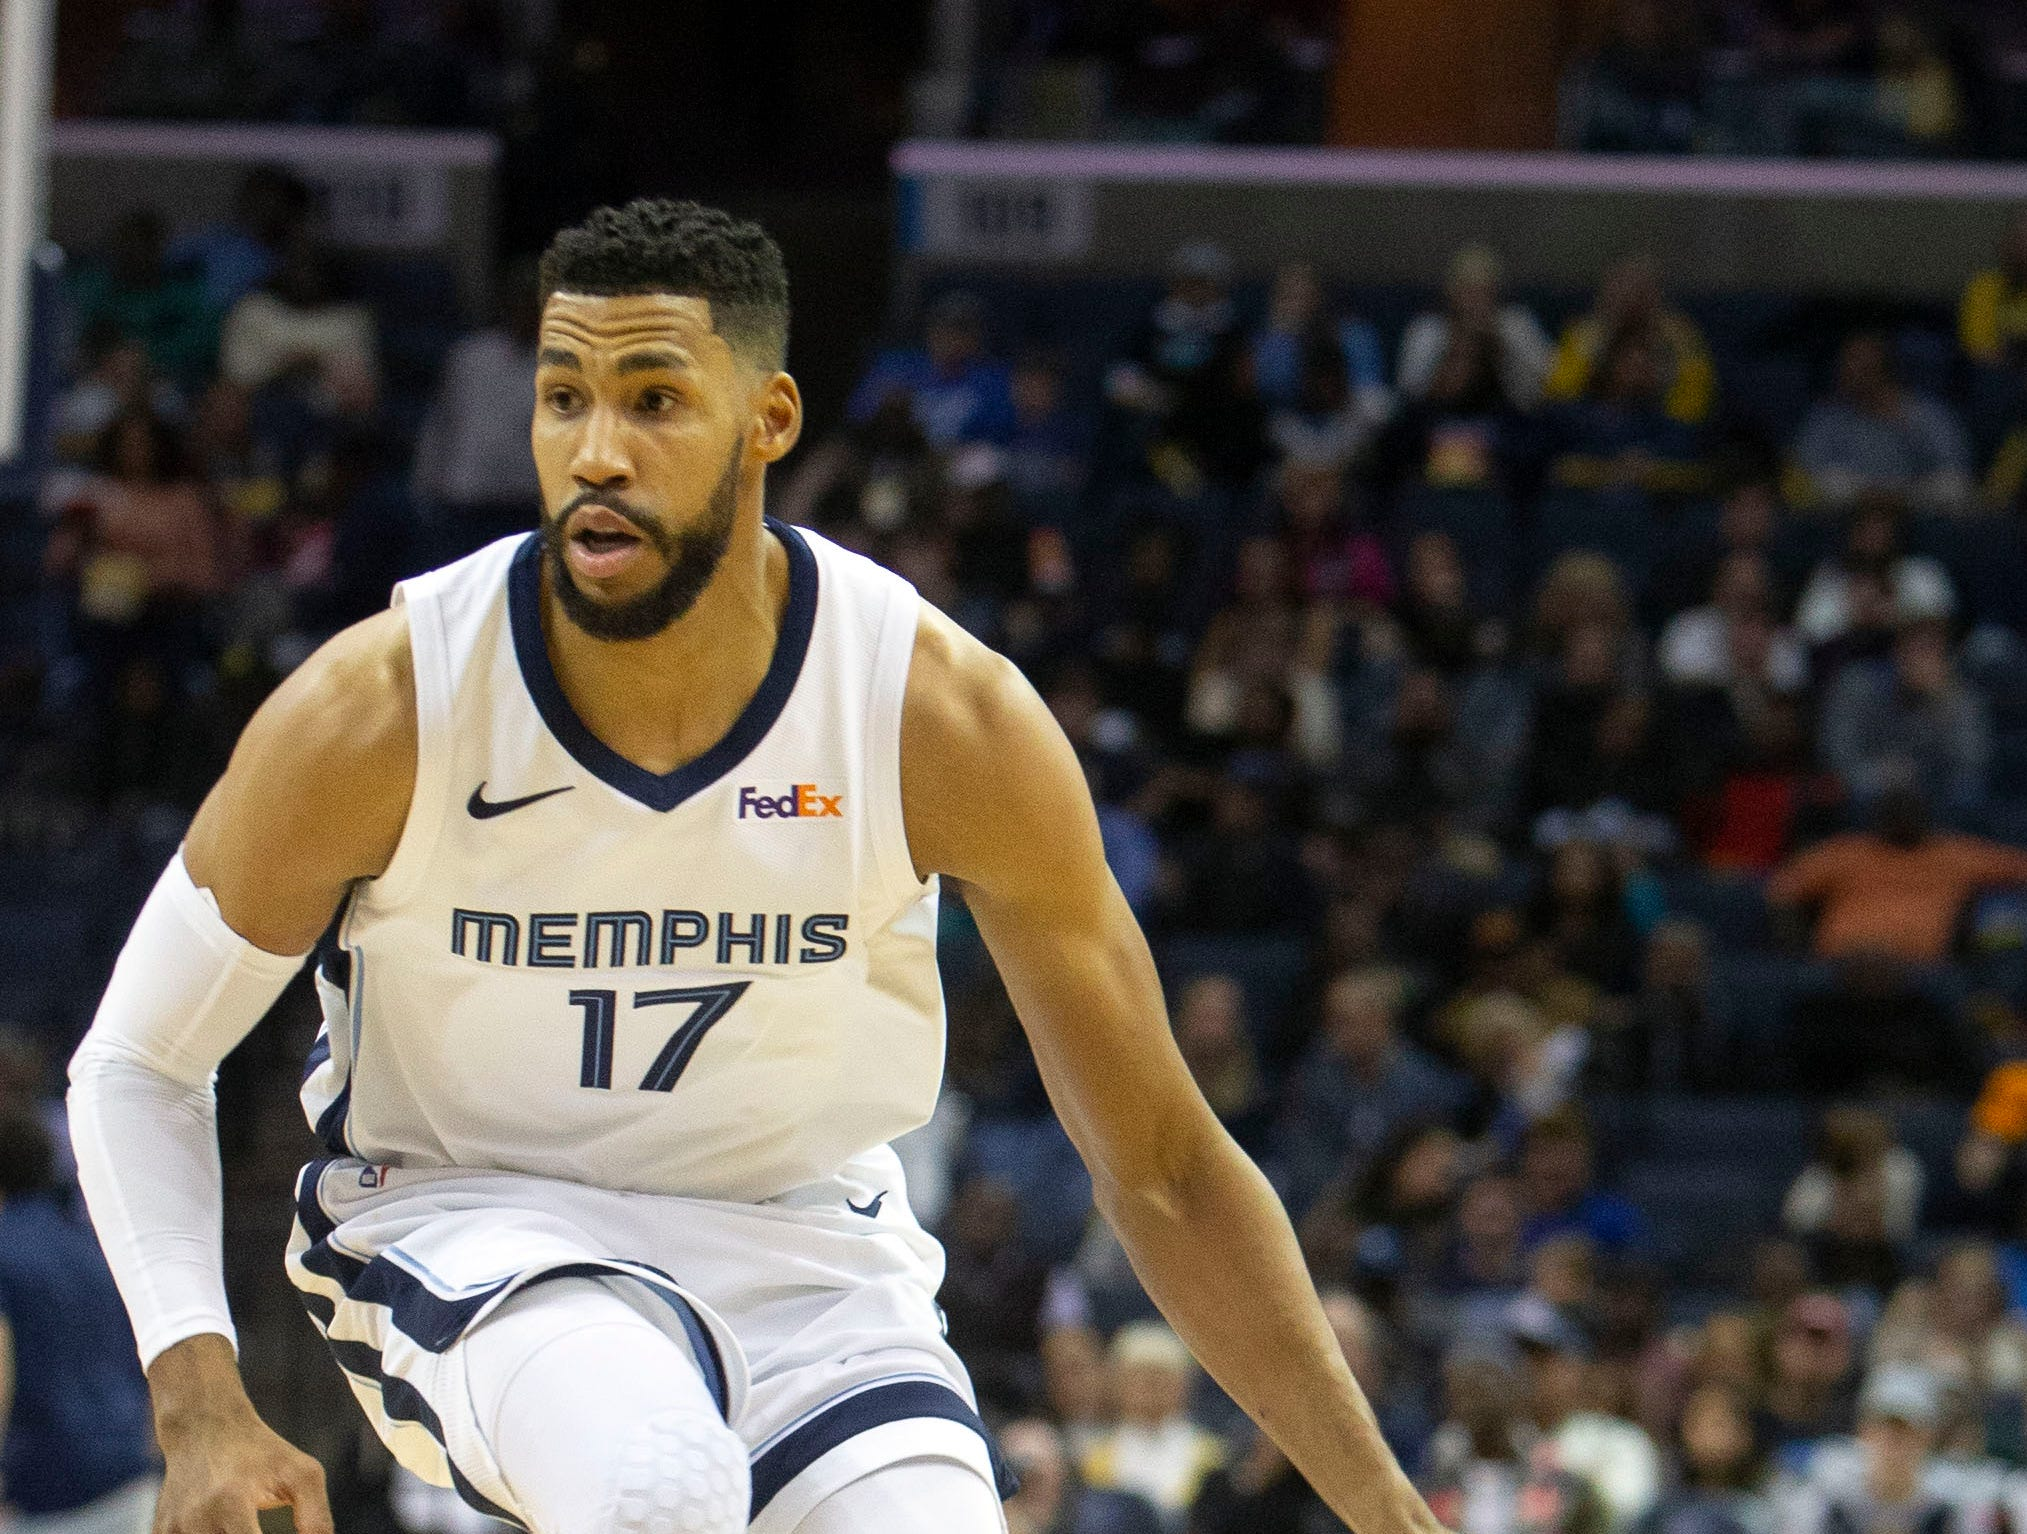 Memphis Grizzles guard Garrett Temple (17)  controls the ball during a NBA basketball game between the Memphis Grizzlies and the  Los Angeles Clippers in the Fedex Forum, Wednesday, Dec. 5, 2015.